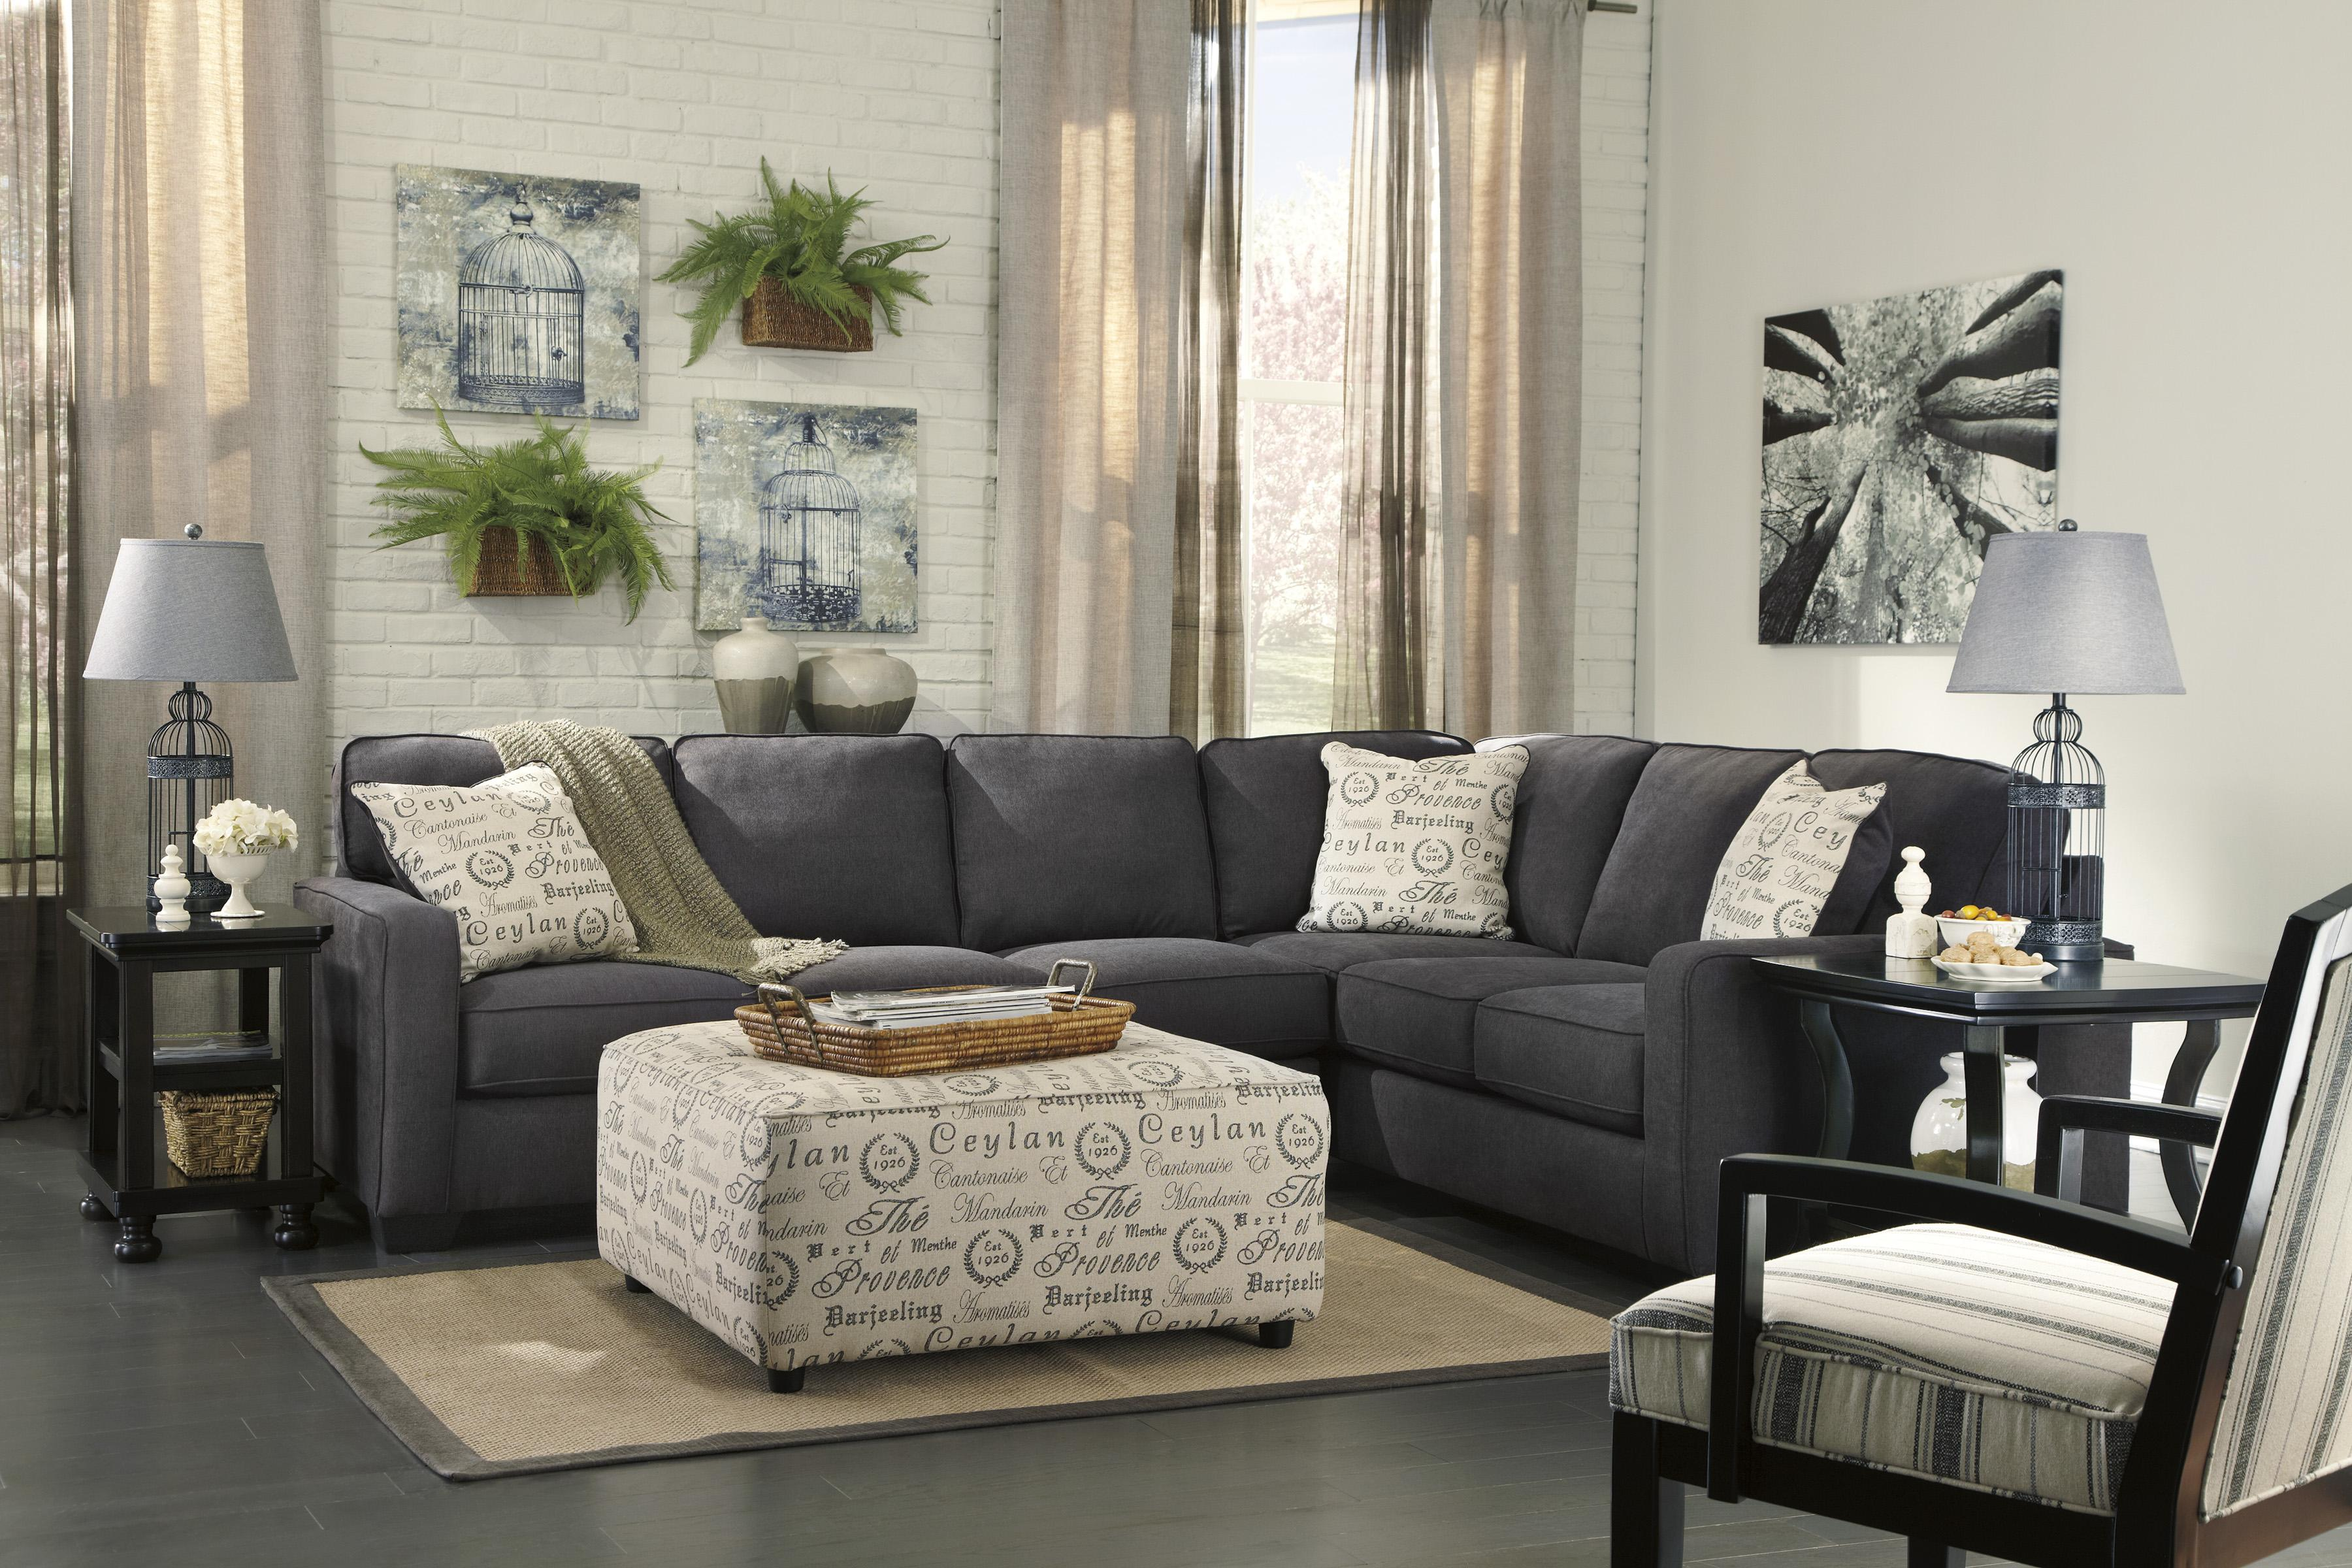 Signature Design by Ashley Furniture Alenya - Charcoal Stationary Living Room Group - Item Number: 16601 Living Room Group 8